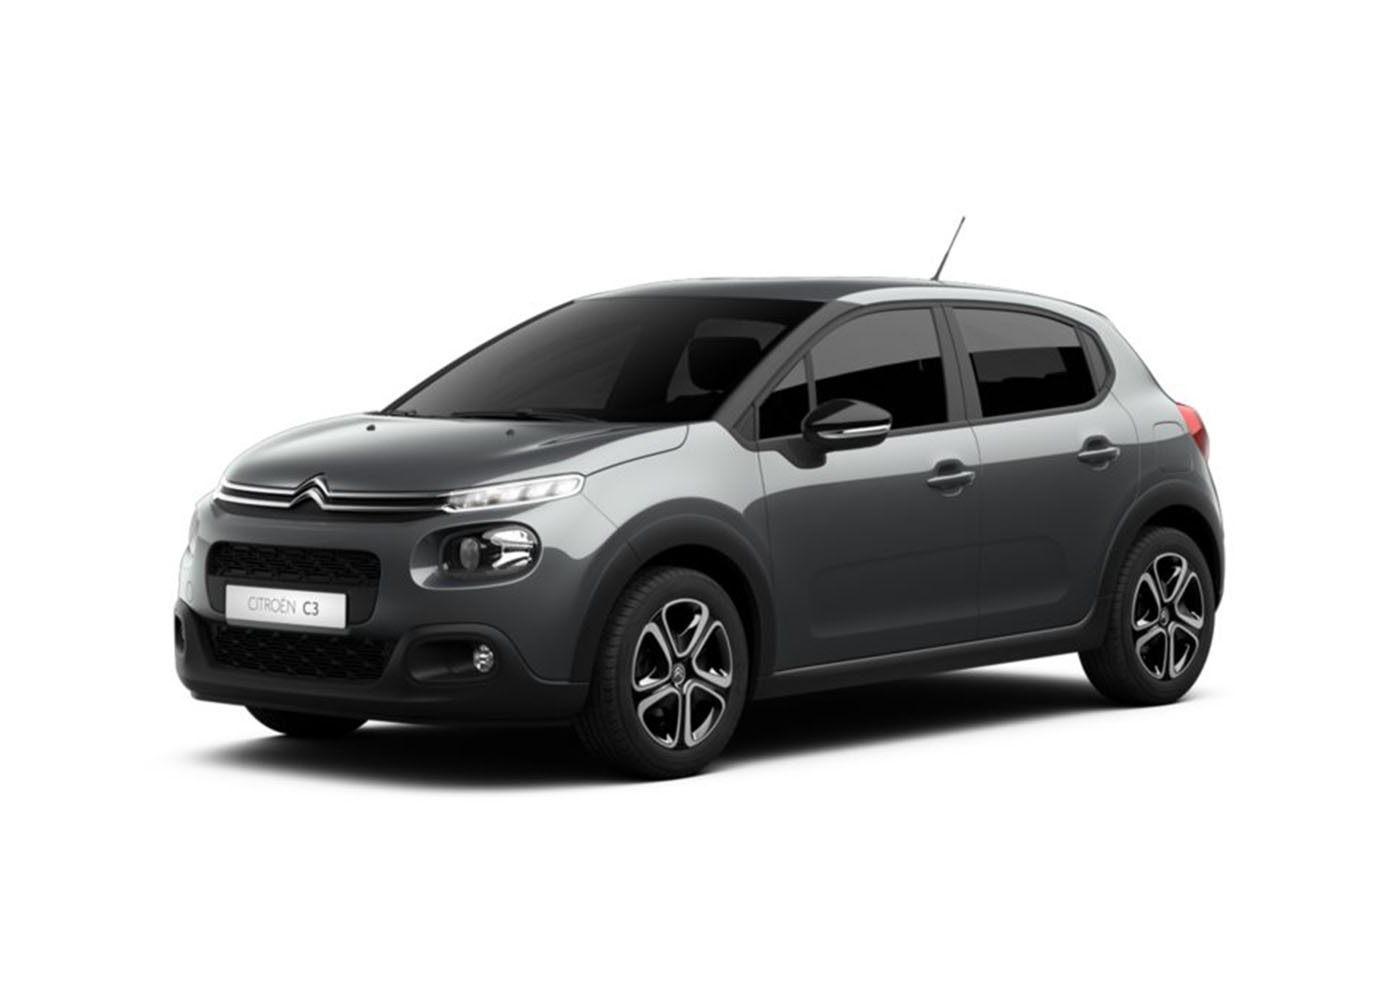 citroen c3 bluehdi 75 s s feel grigio platinium km0 a soli 12500 su miacar 8xvxs. Black Bedroom Furniture Sets. Home Design Ideas